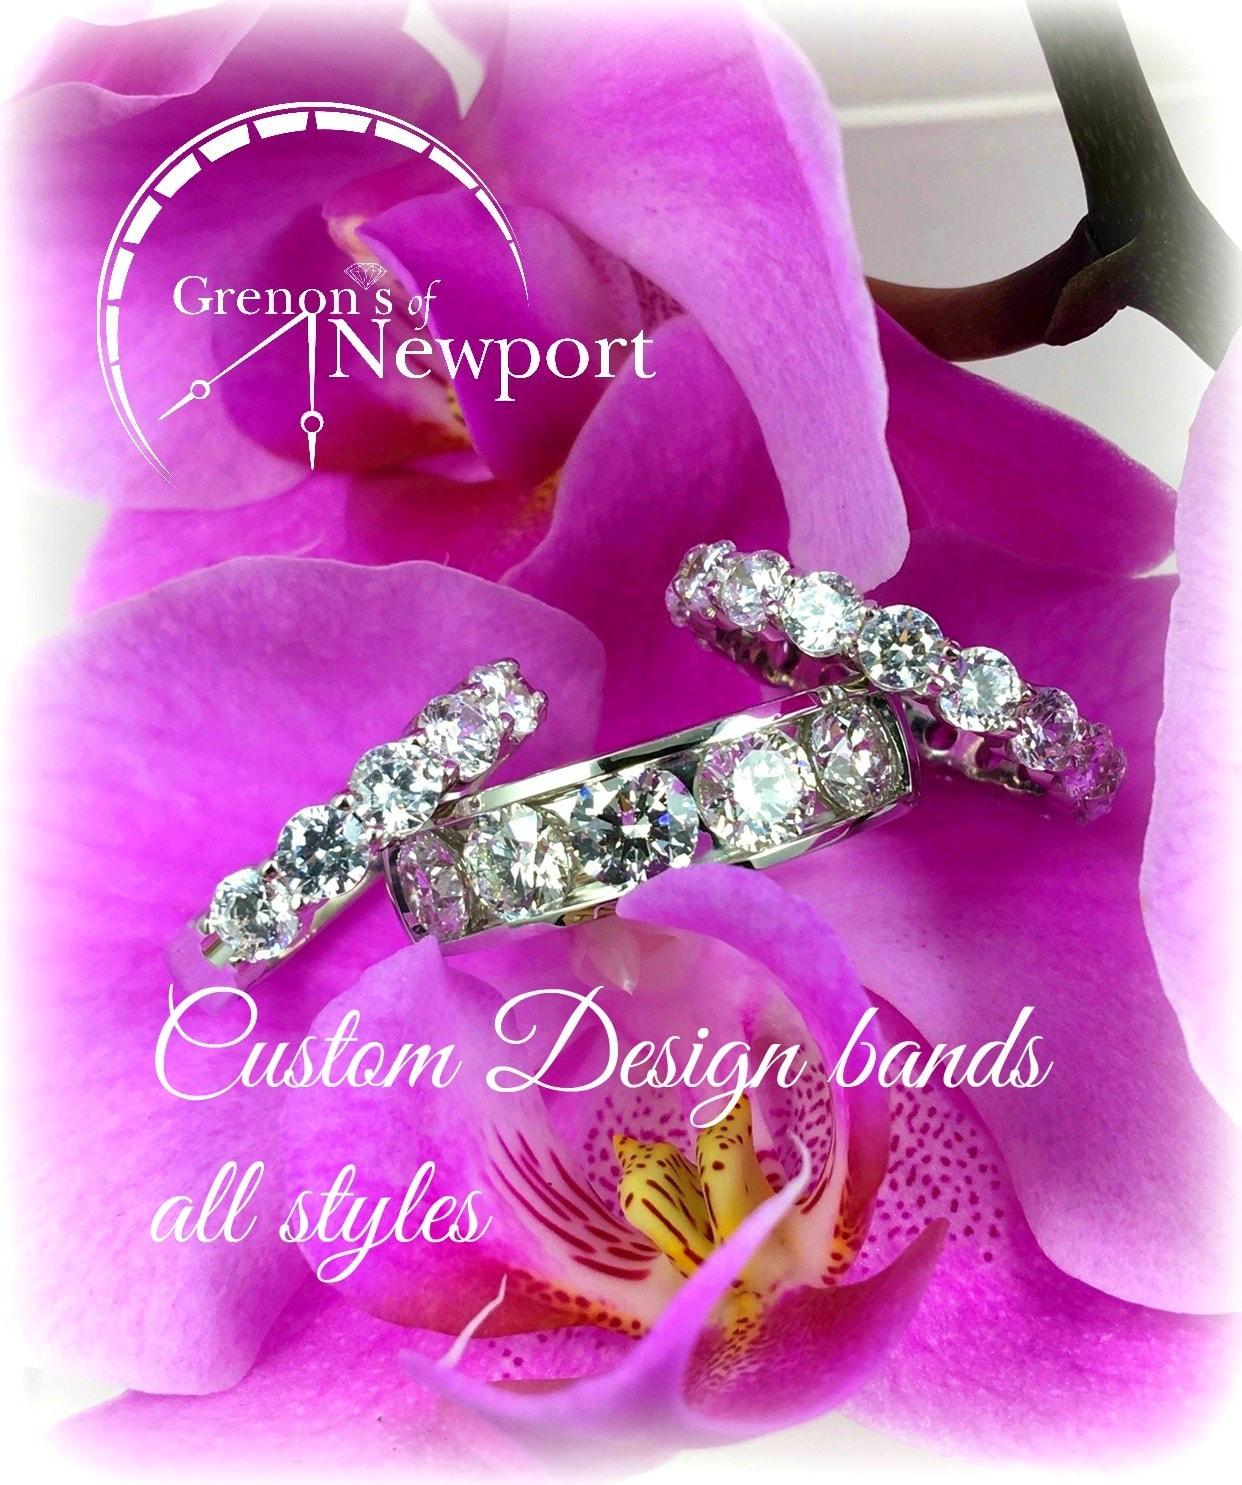 Grenon's_Of_Newport_Custom_design_custom_eternity_bands_all_styles-min